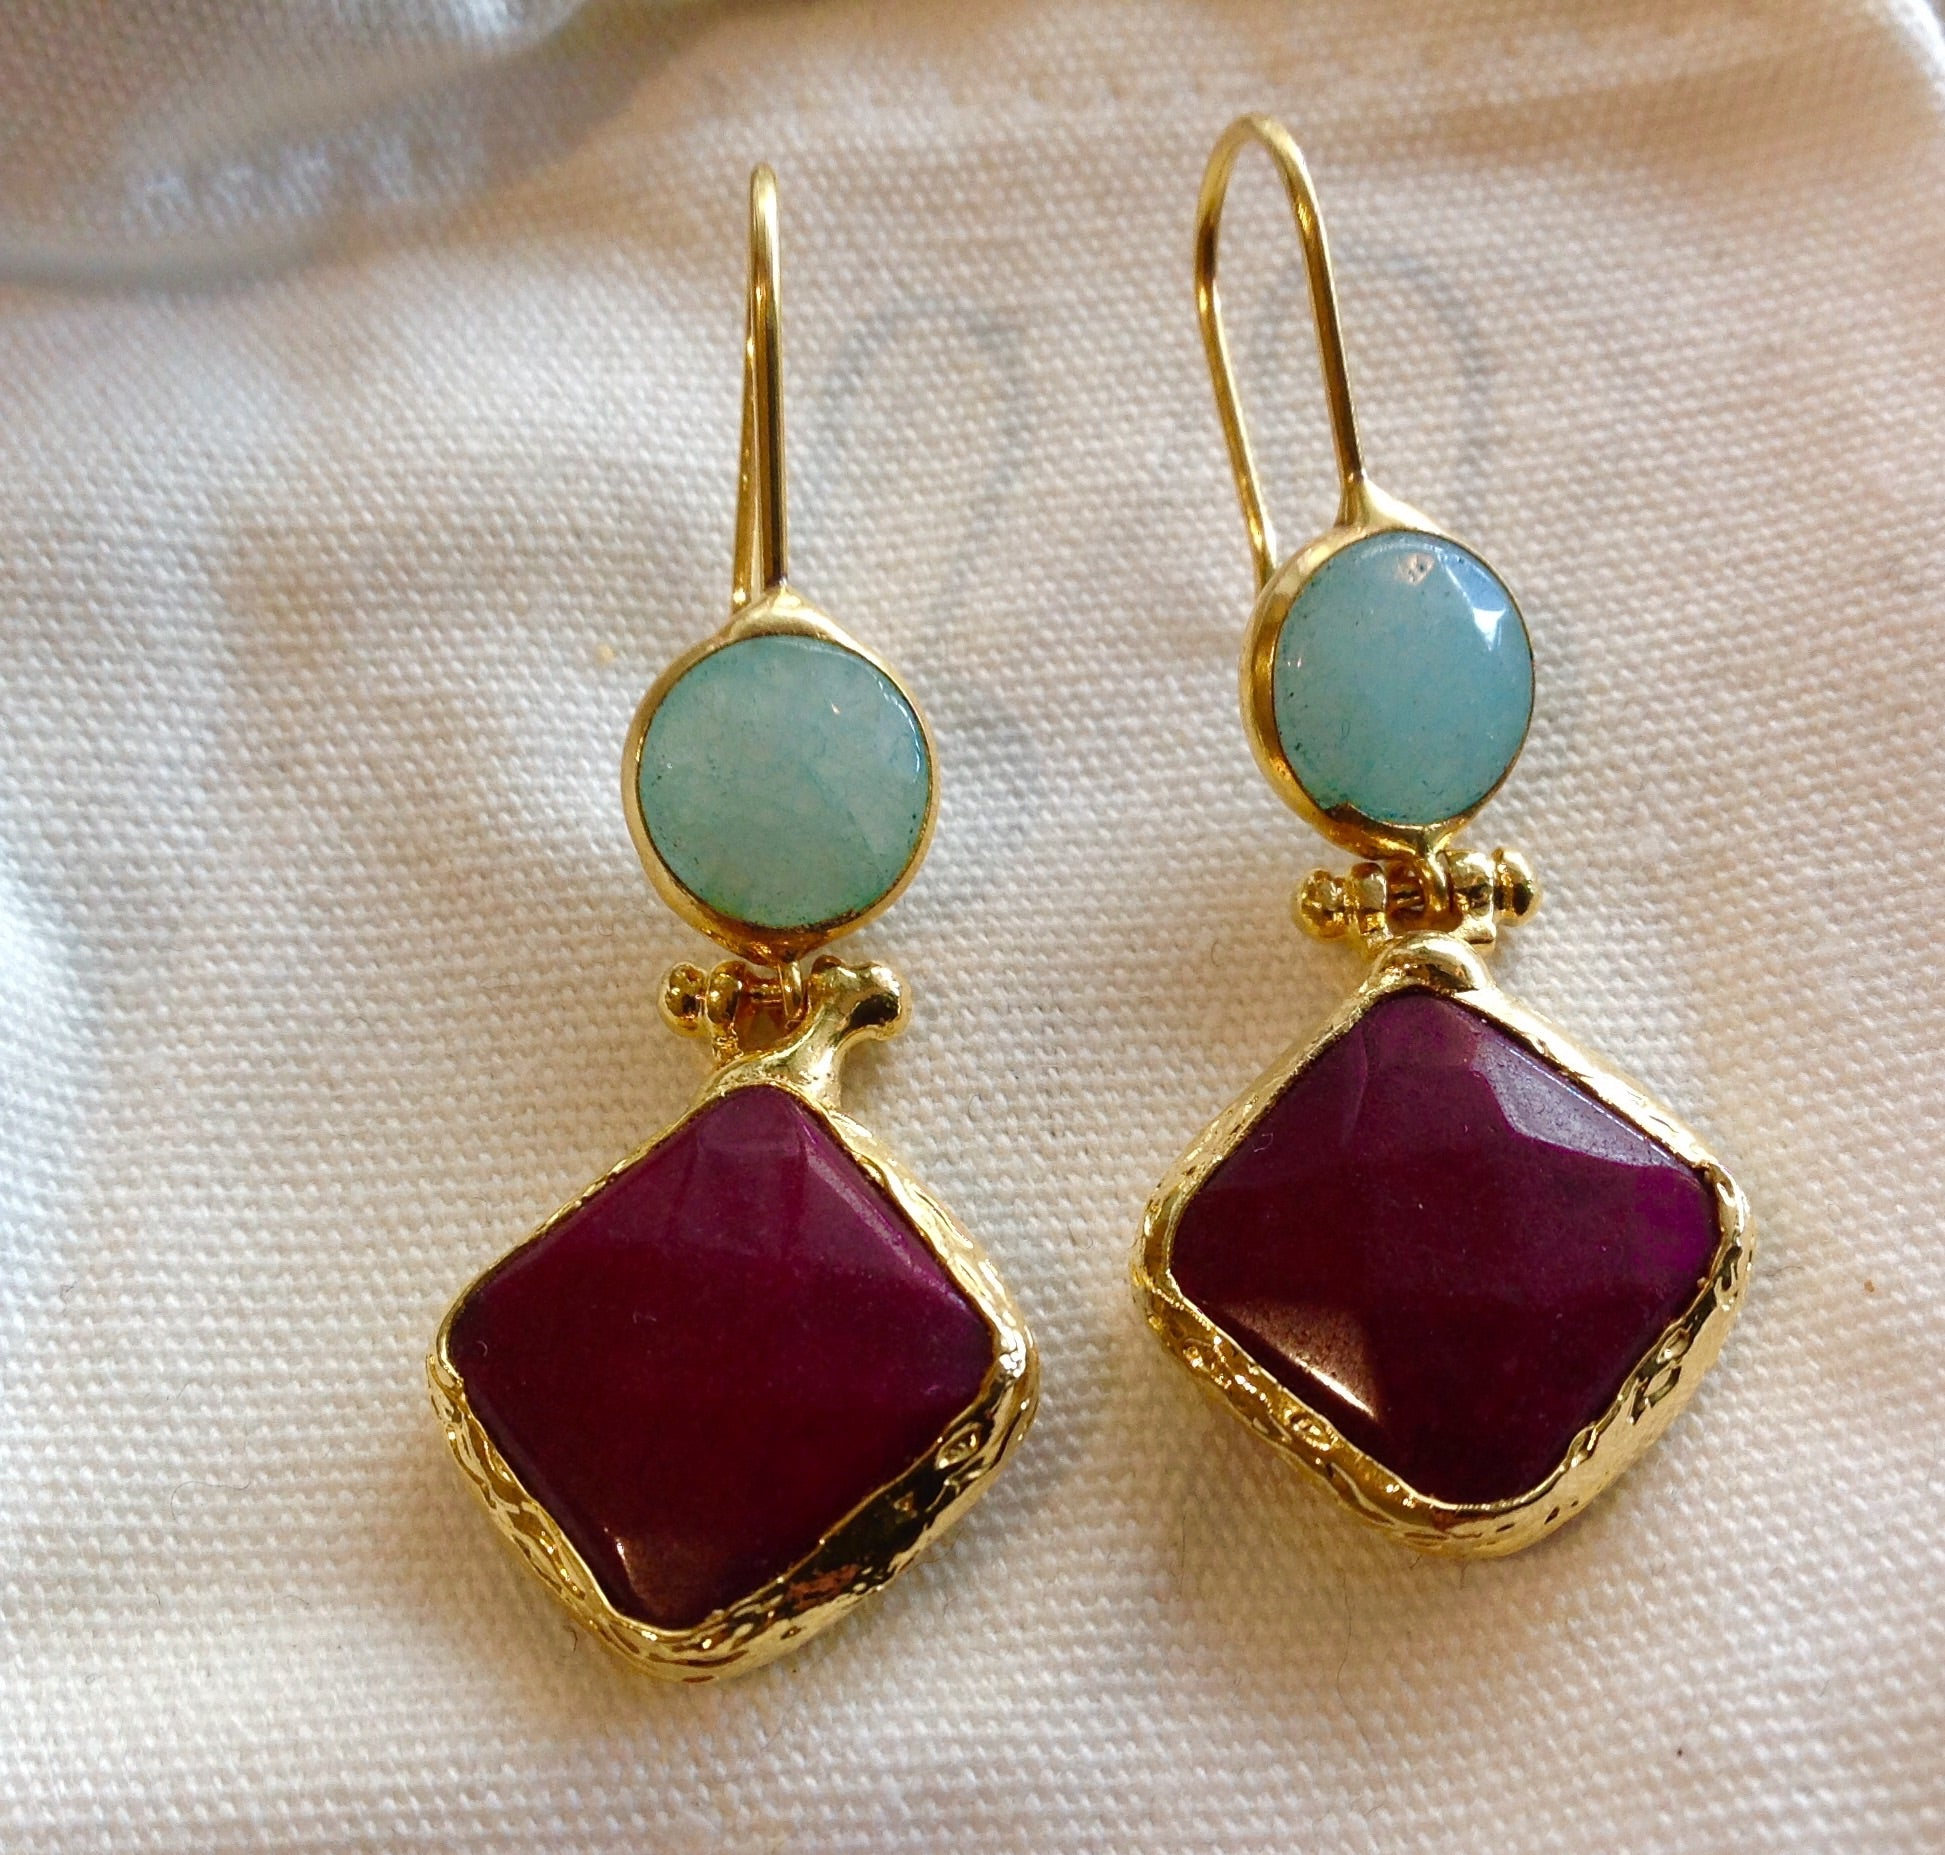 HANDMADE TWIN DROP EARRINGS - AQUA/PINK RUBY COLOURED STONE